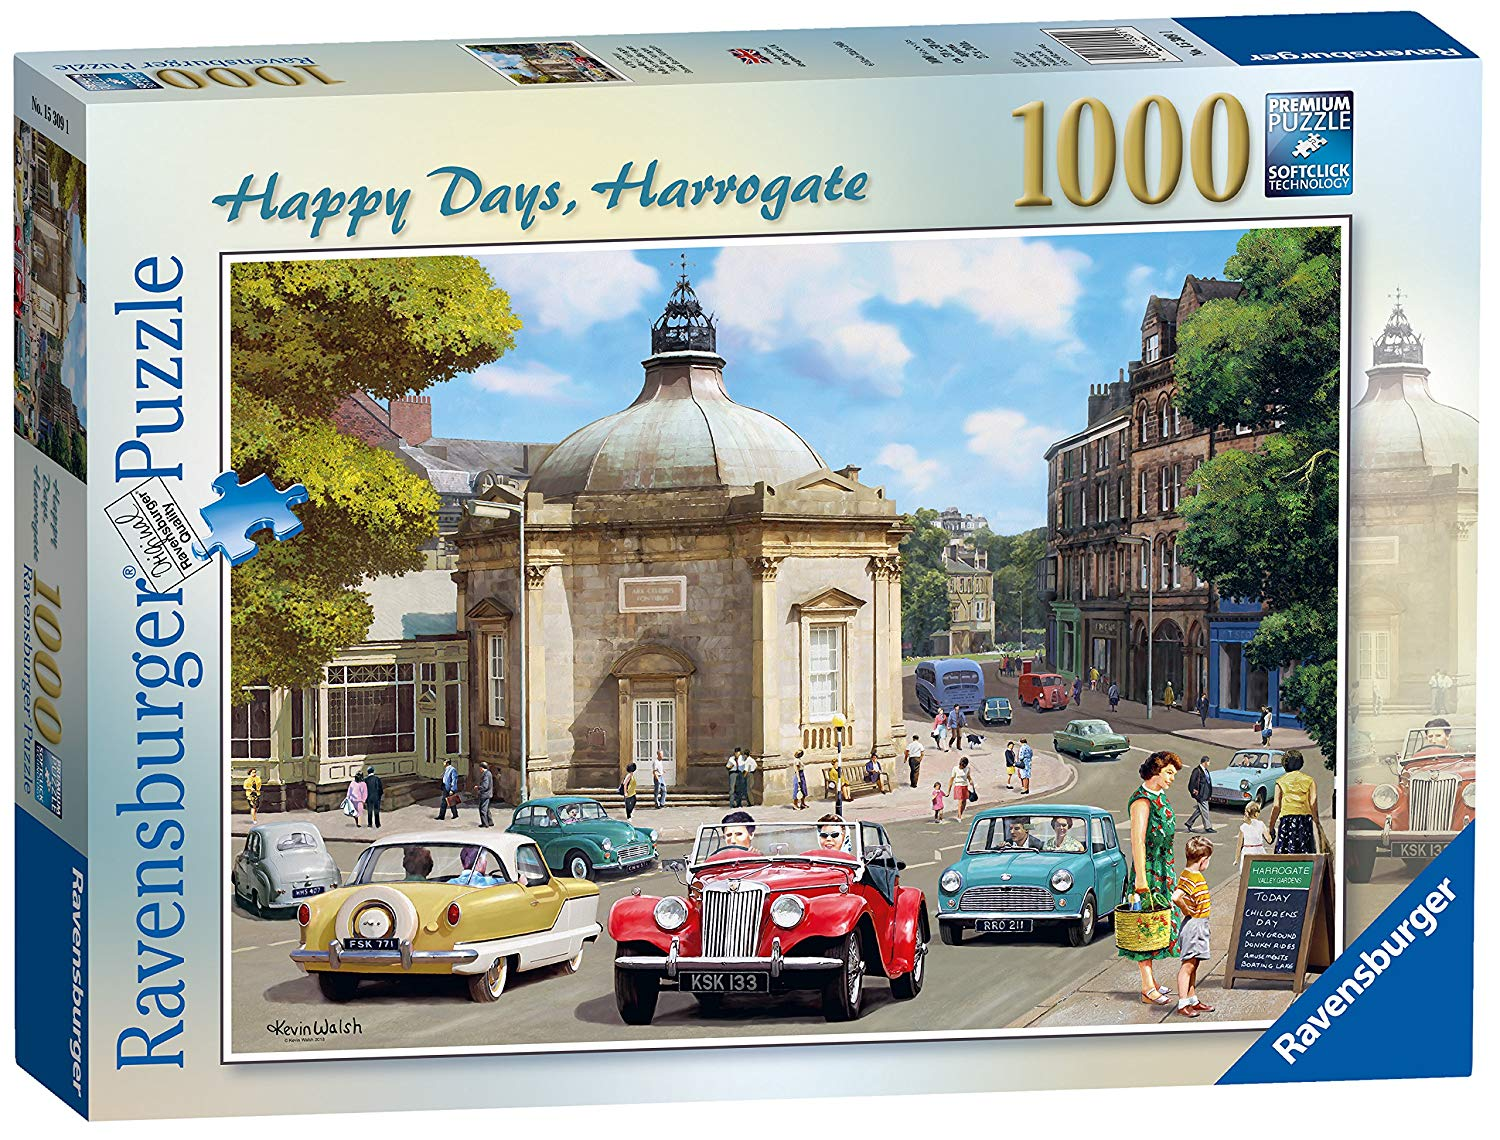 Happy Days Harrogate, 1000pc